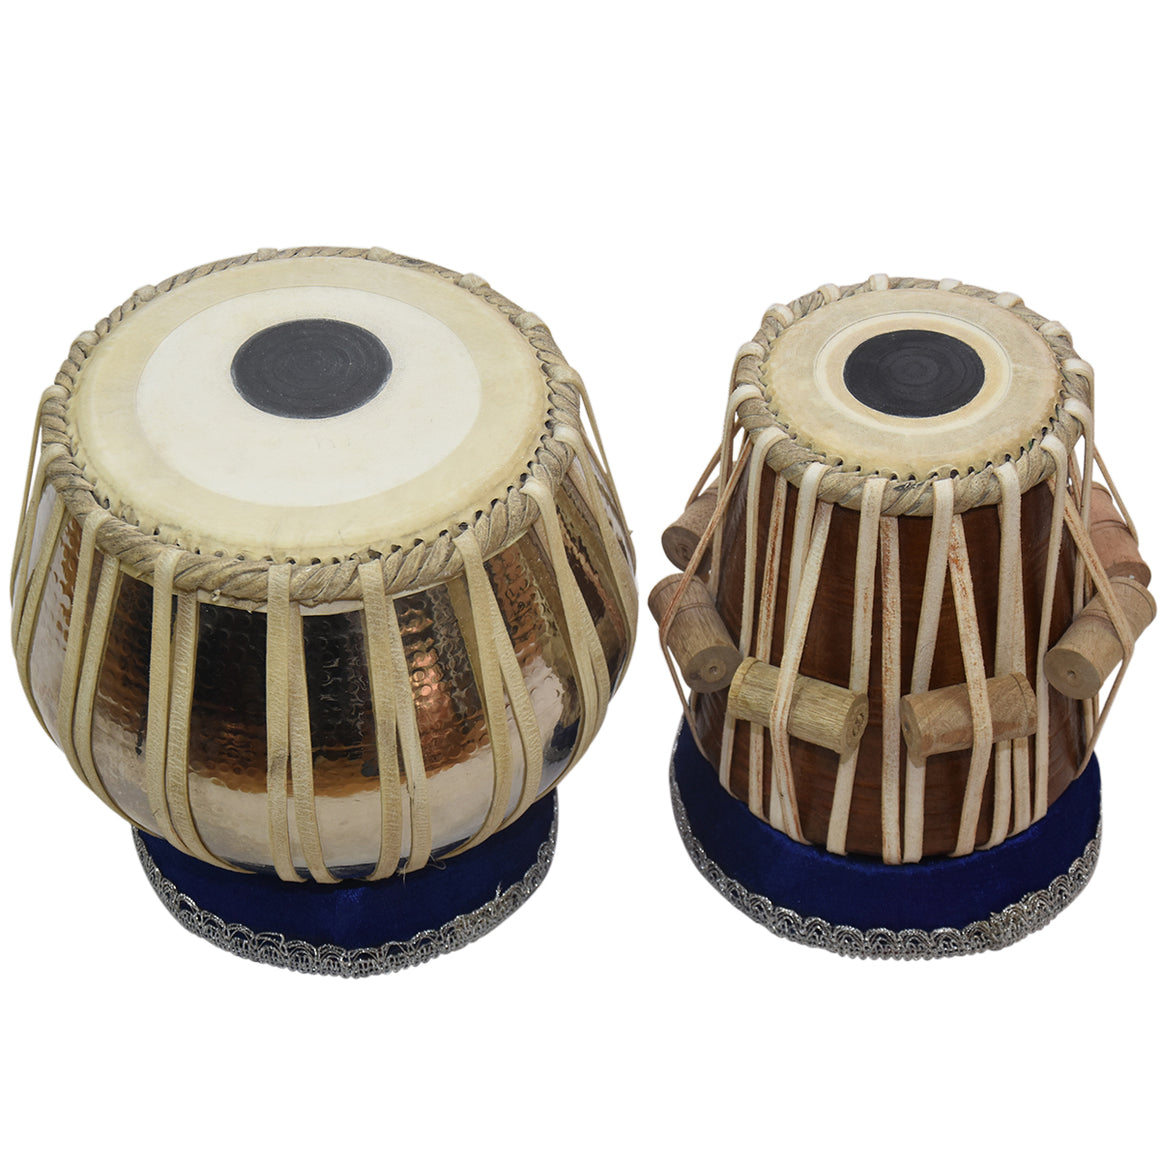 TAAL Standard 3.5 KG Brass Tabla Set